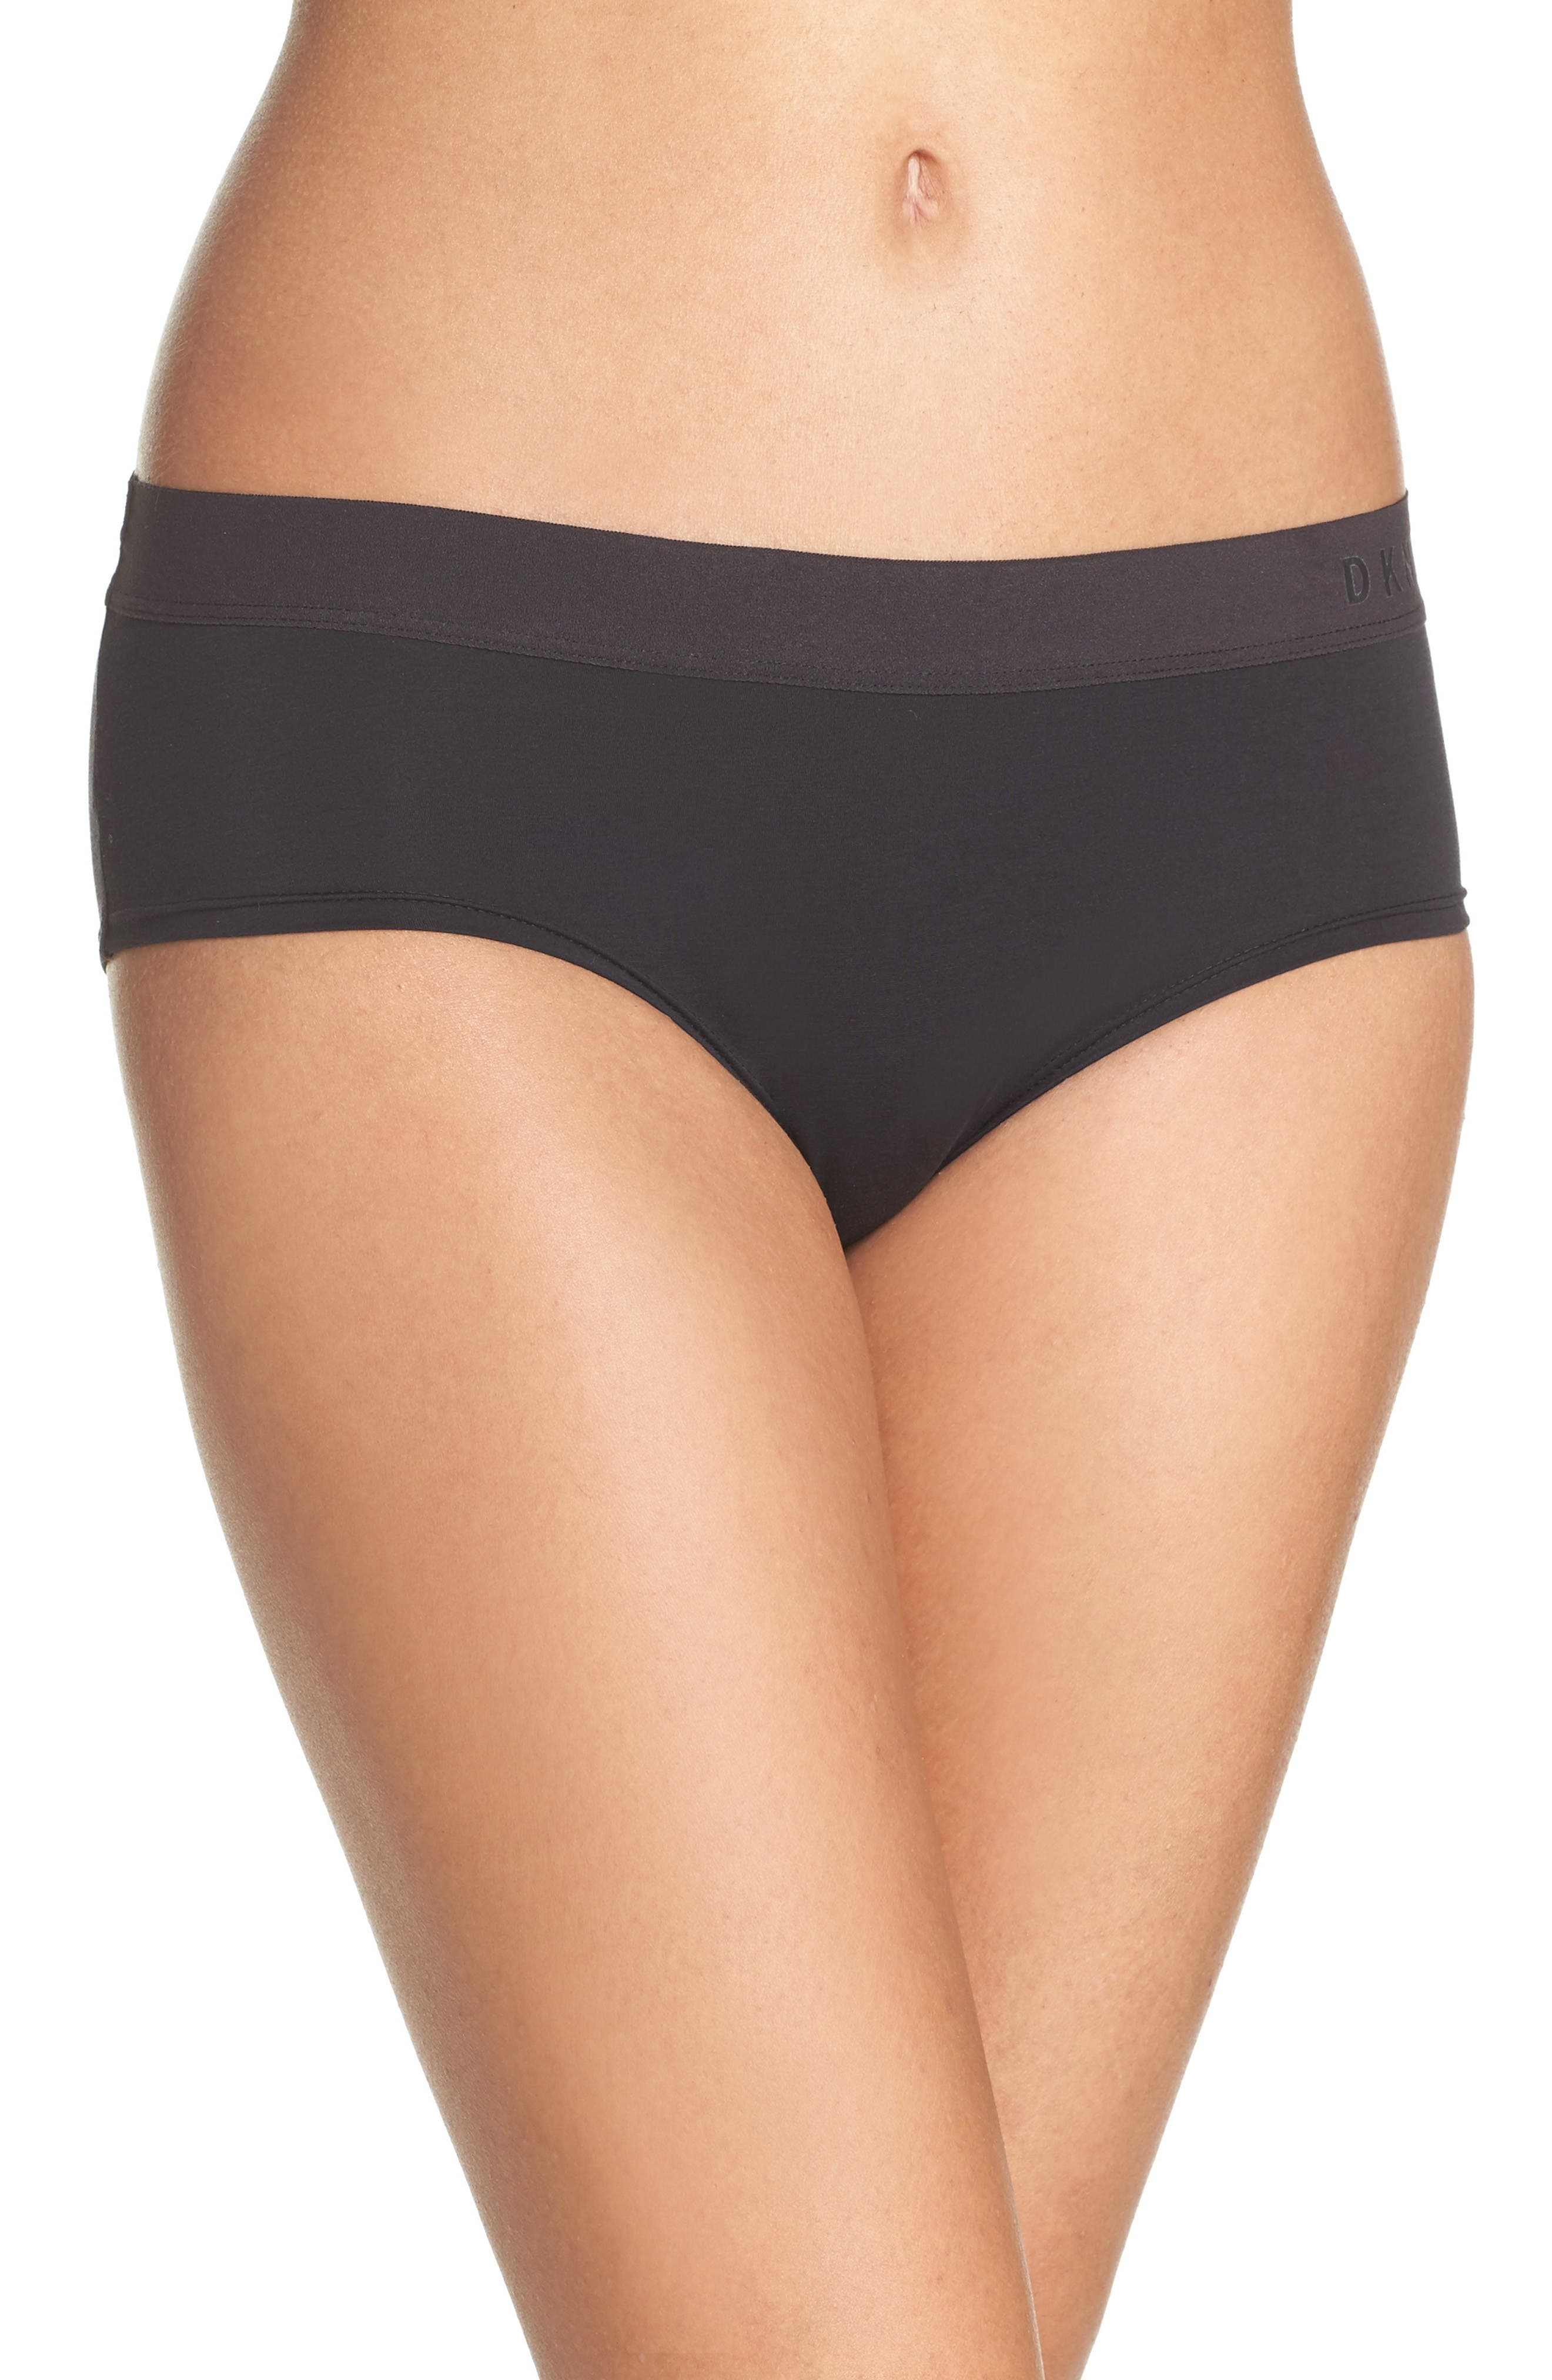 DKNY Hipster Panties (4 for $30)